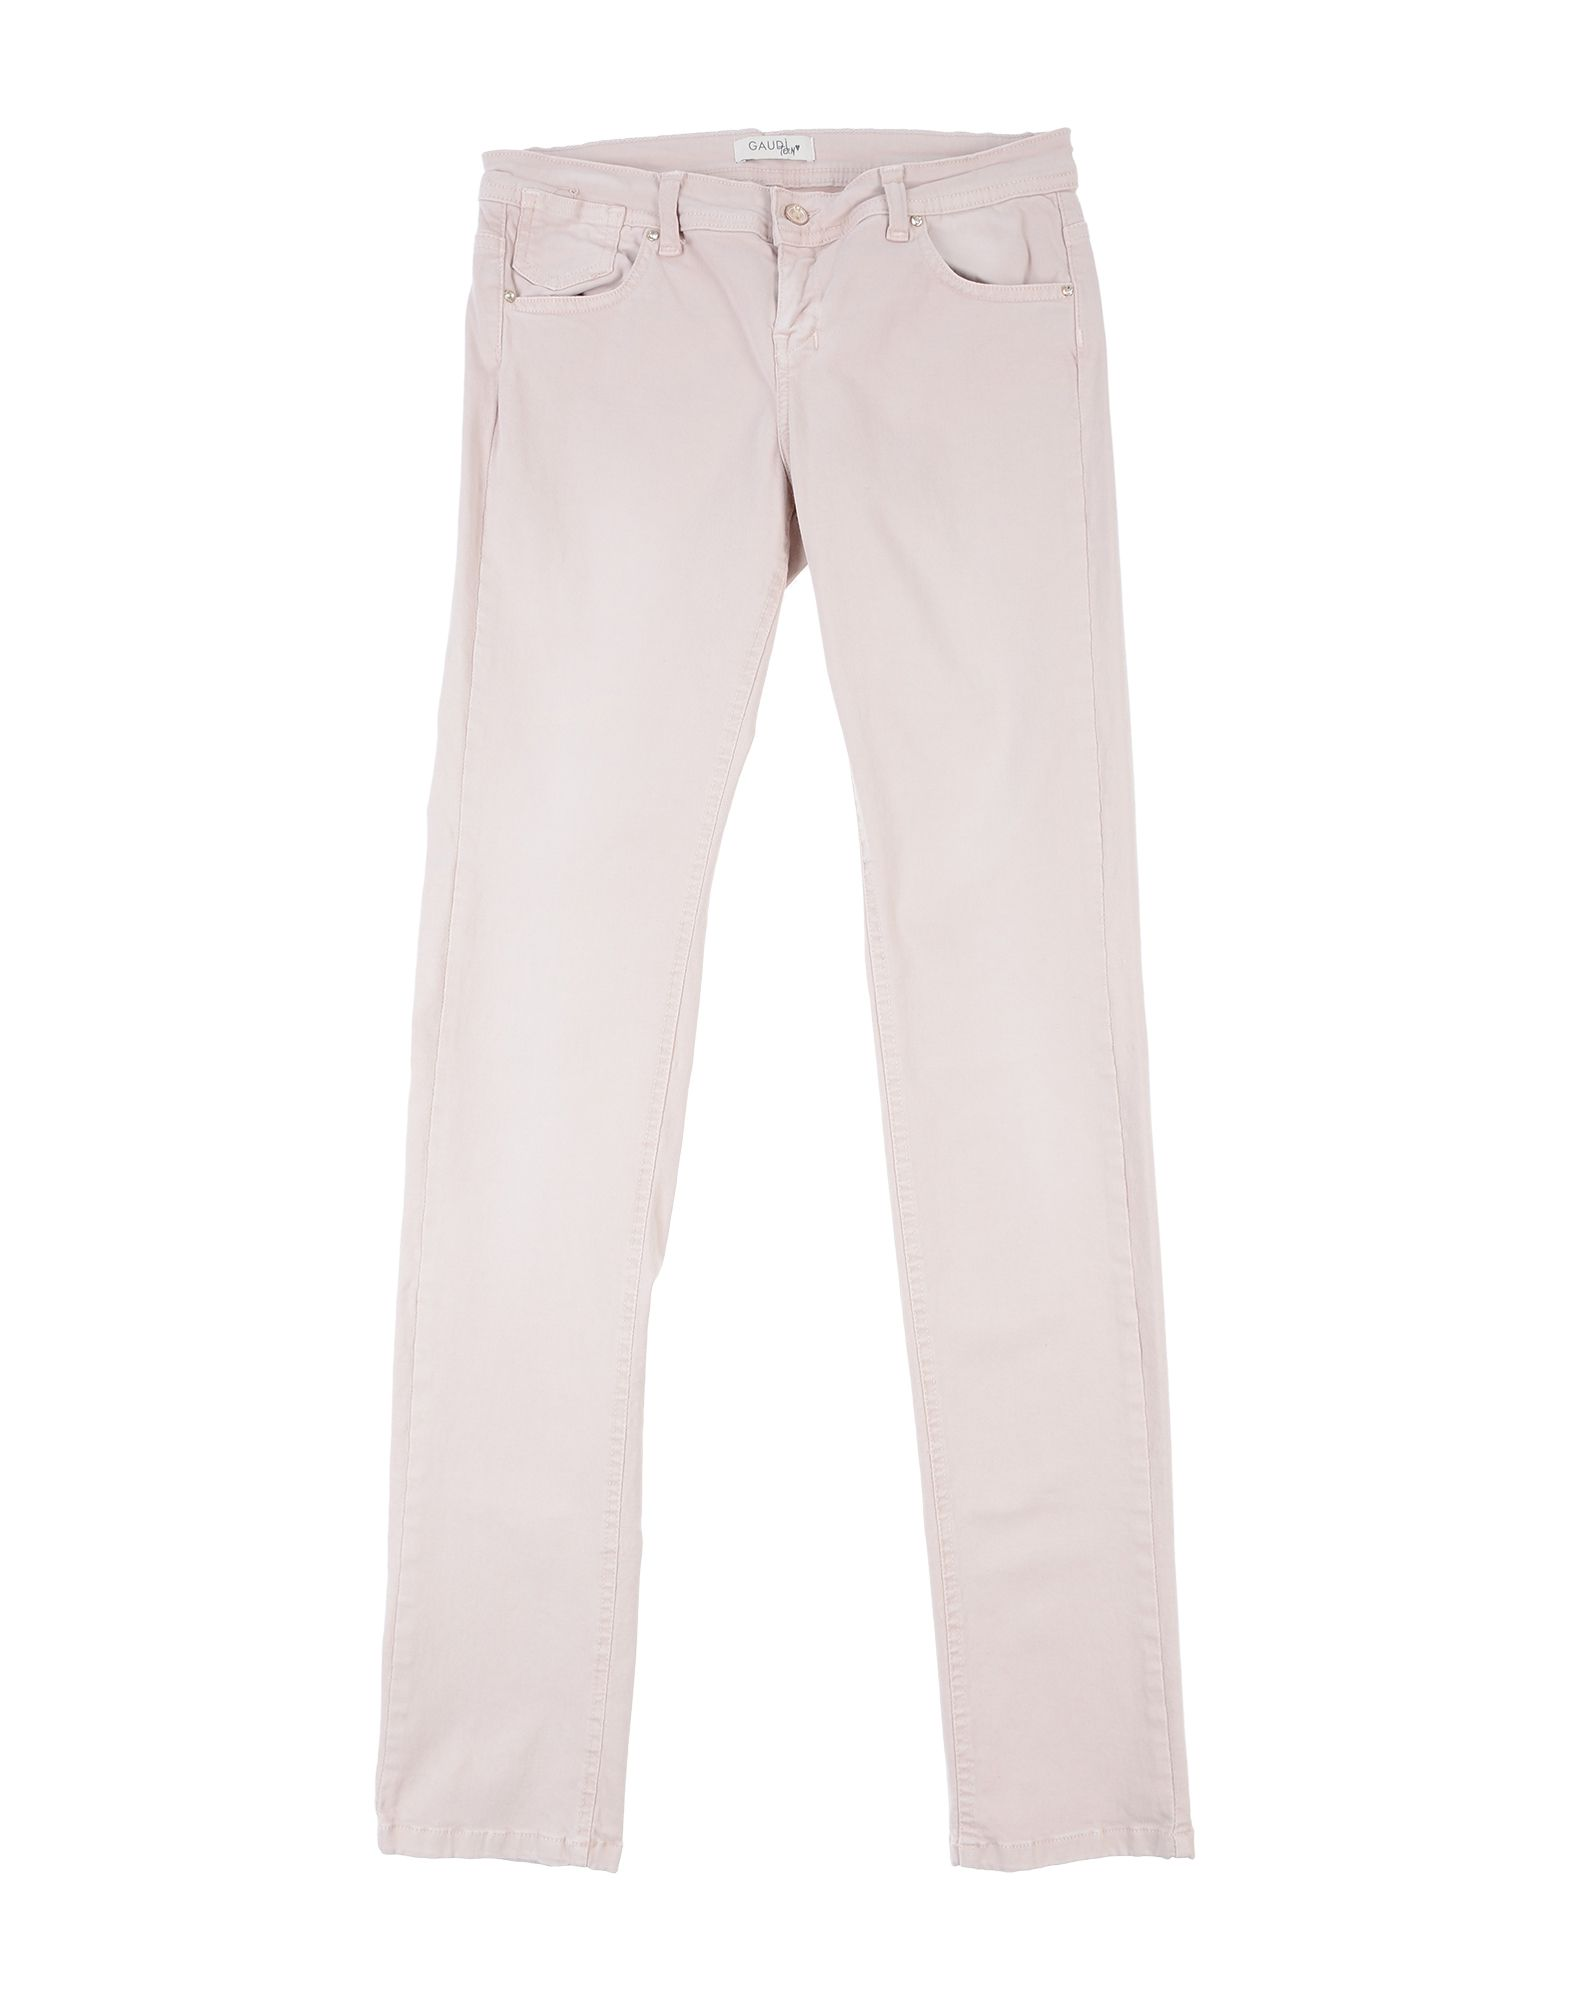 Gaudì Kids' Casual Pants In Neutrals